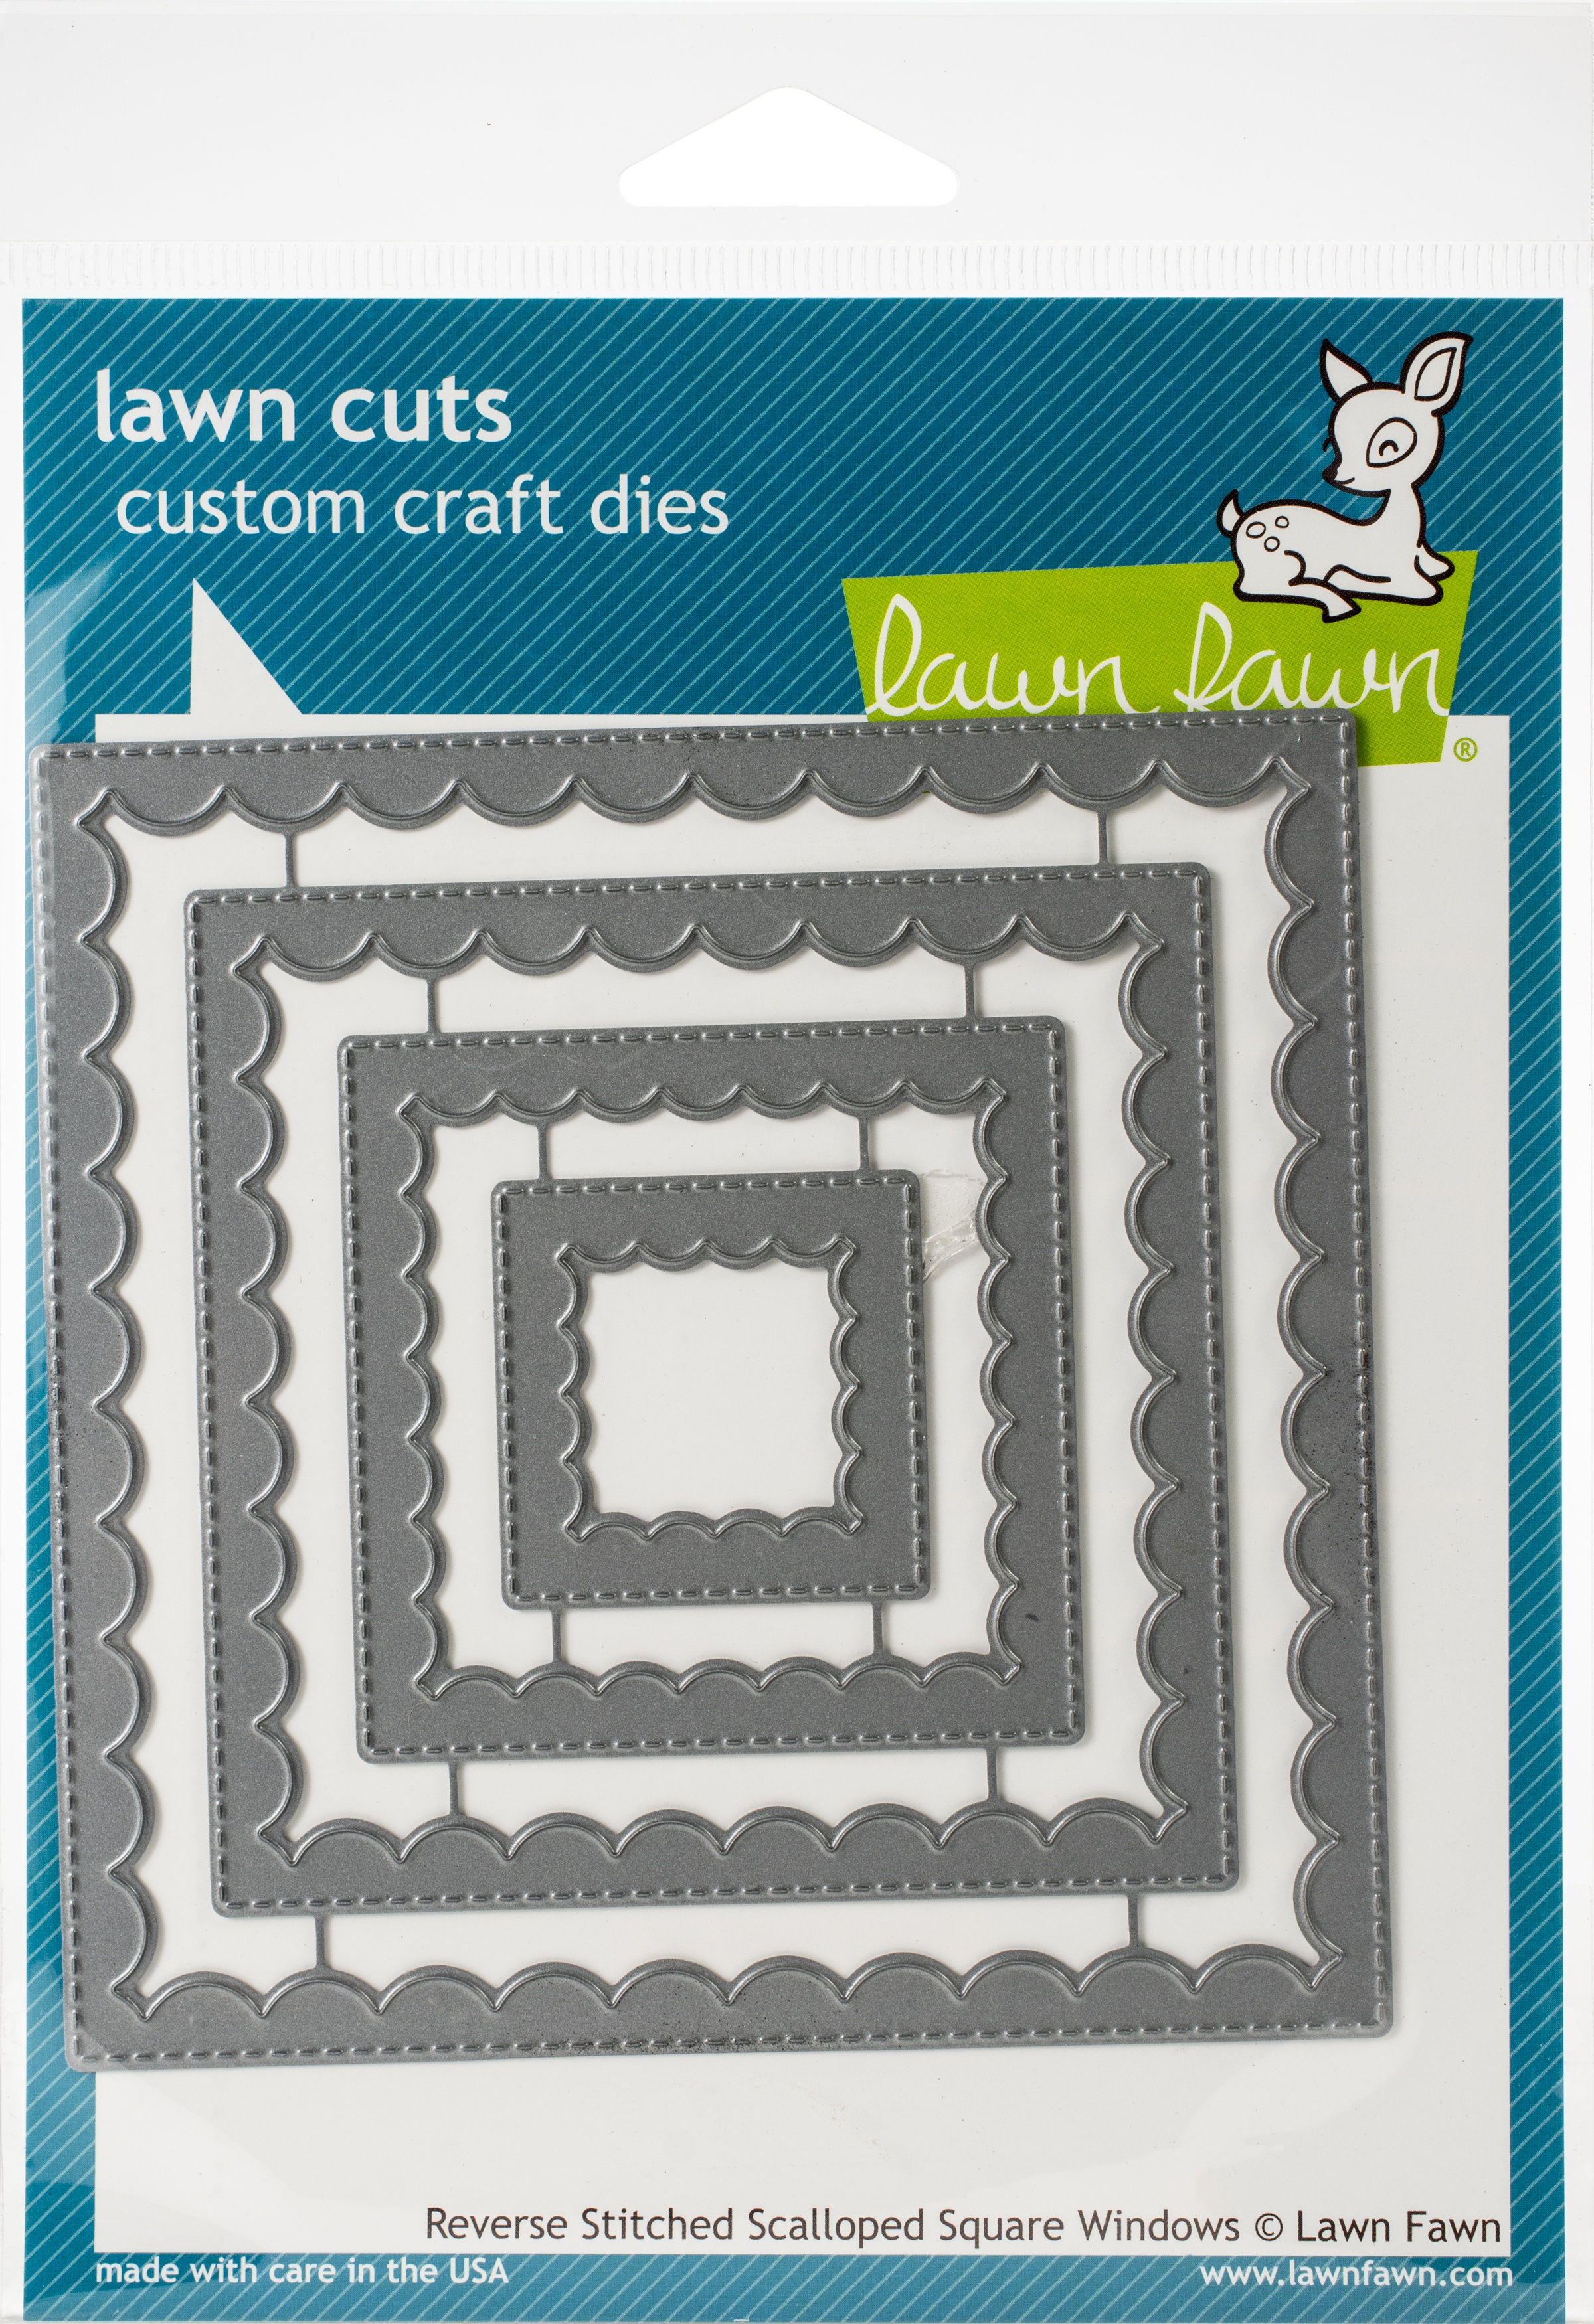 Lawn Cuts Custom Craft Die-Reverse Stitched Scalloped Square Window